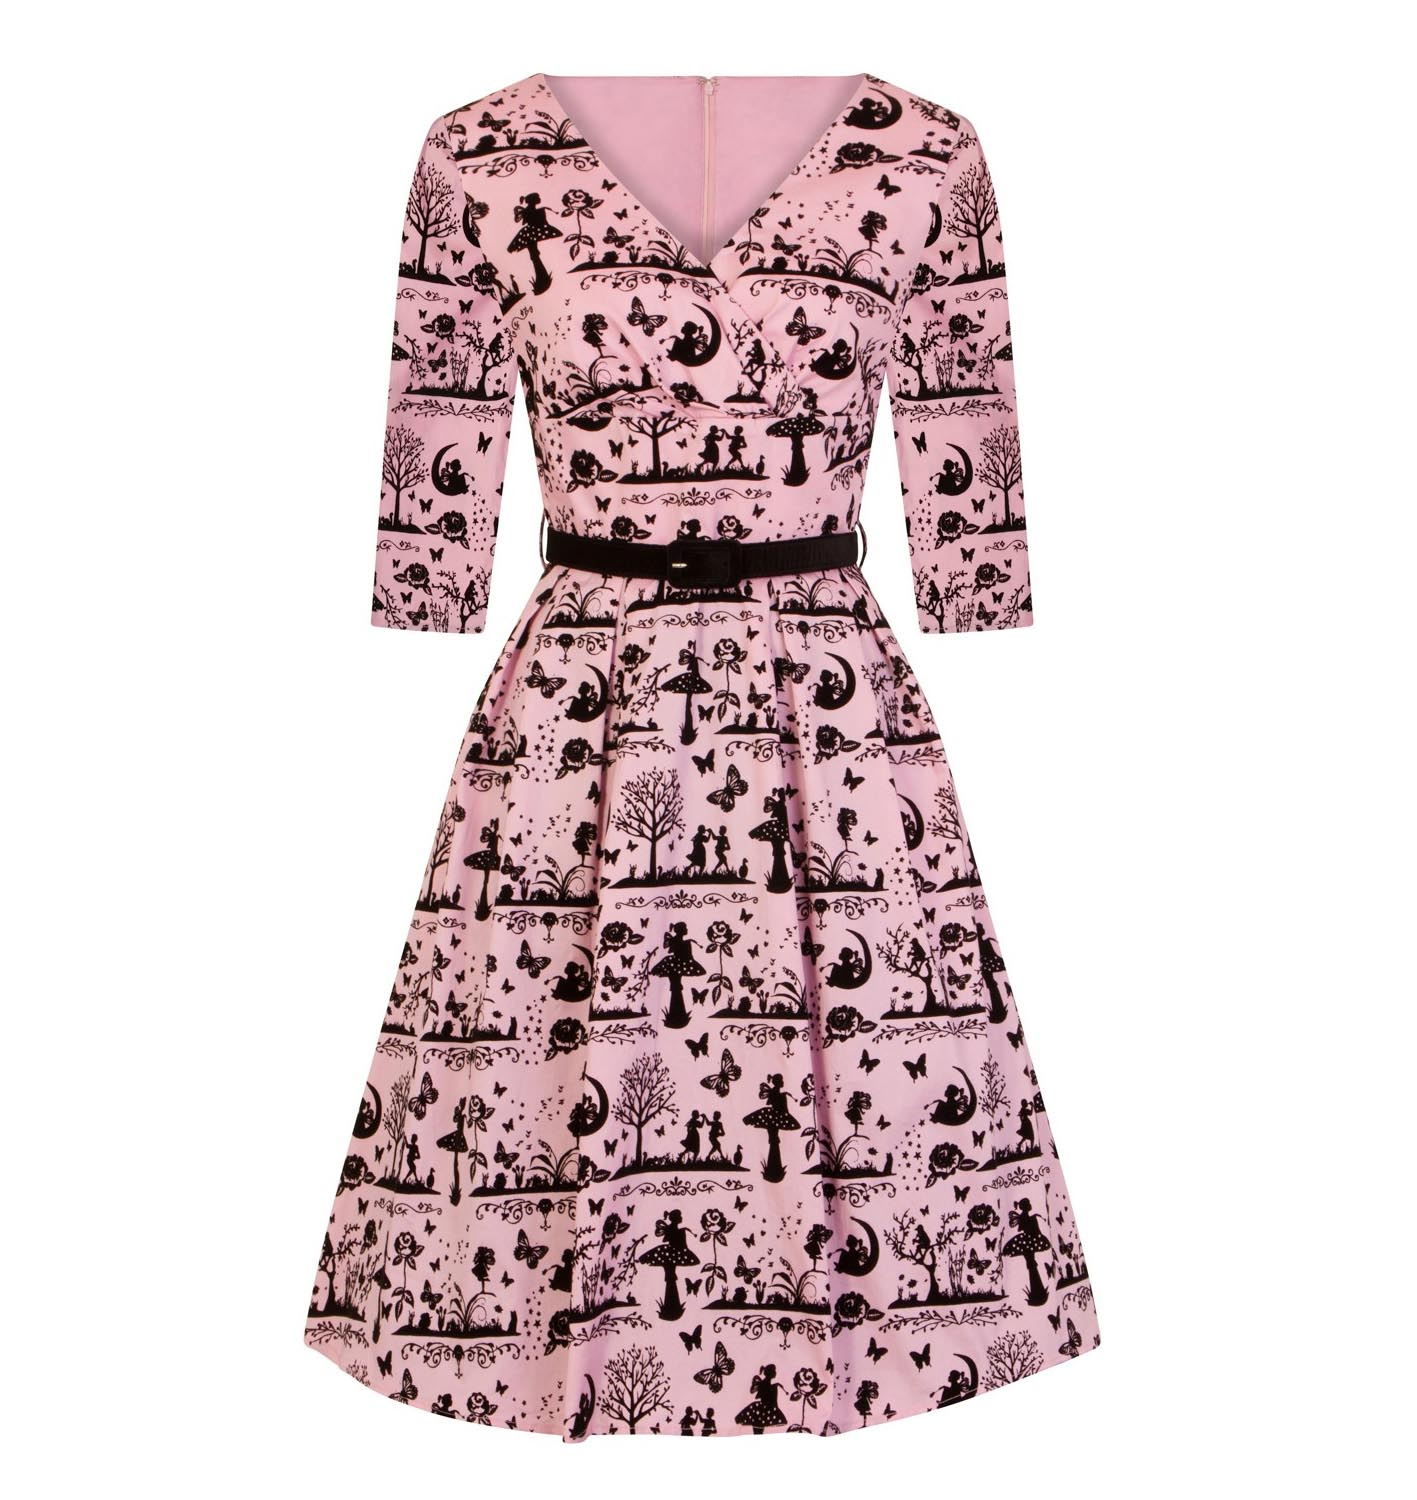 Hell-Bunny-40s-50s-Pin-Up-Dress-Fairy-Butterfly-ANDERSON-Black-Pink-All-Sizes thumbnail 3